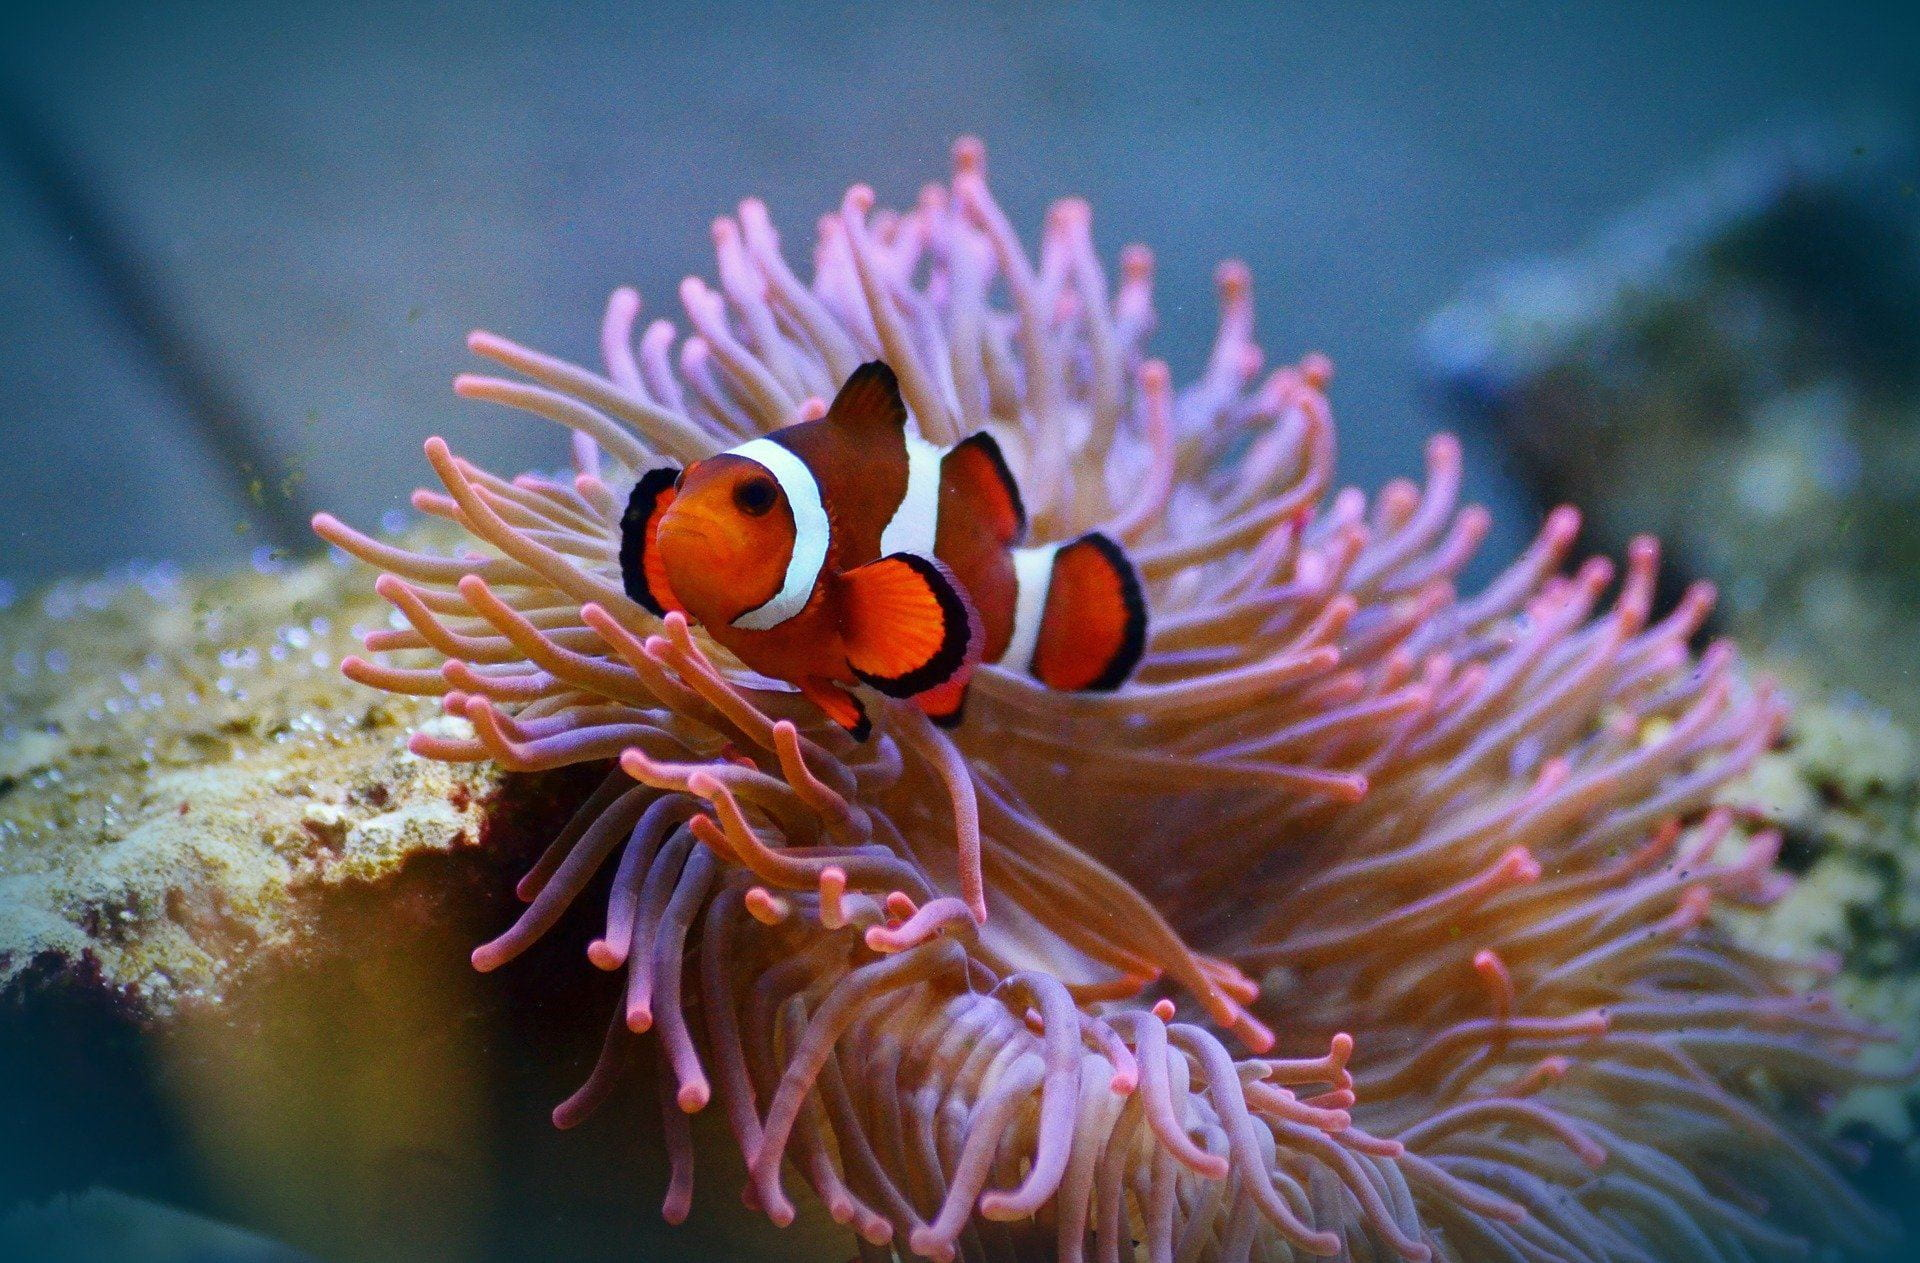 A white and orange striped fish swims in front of a light pink anemone in clear water.